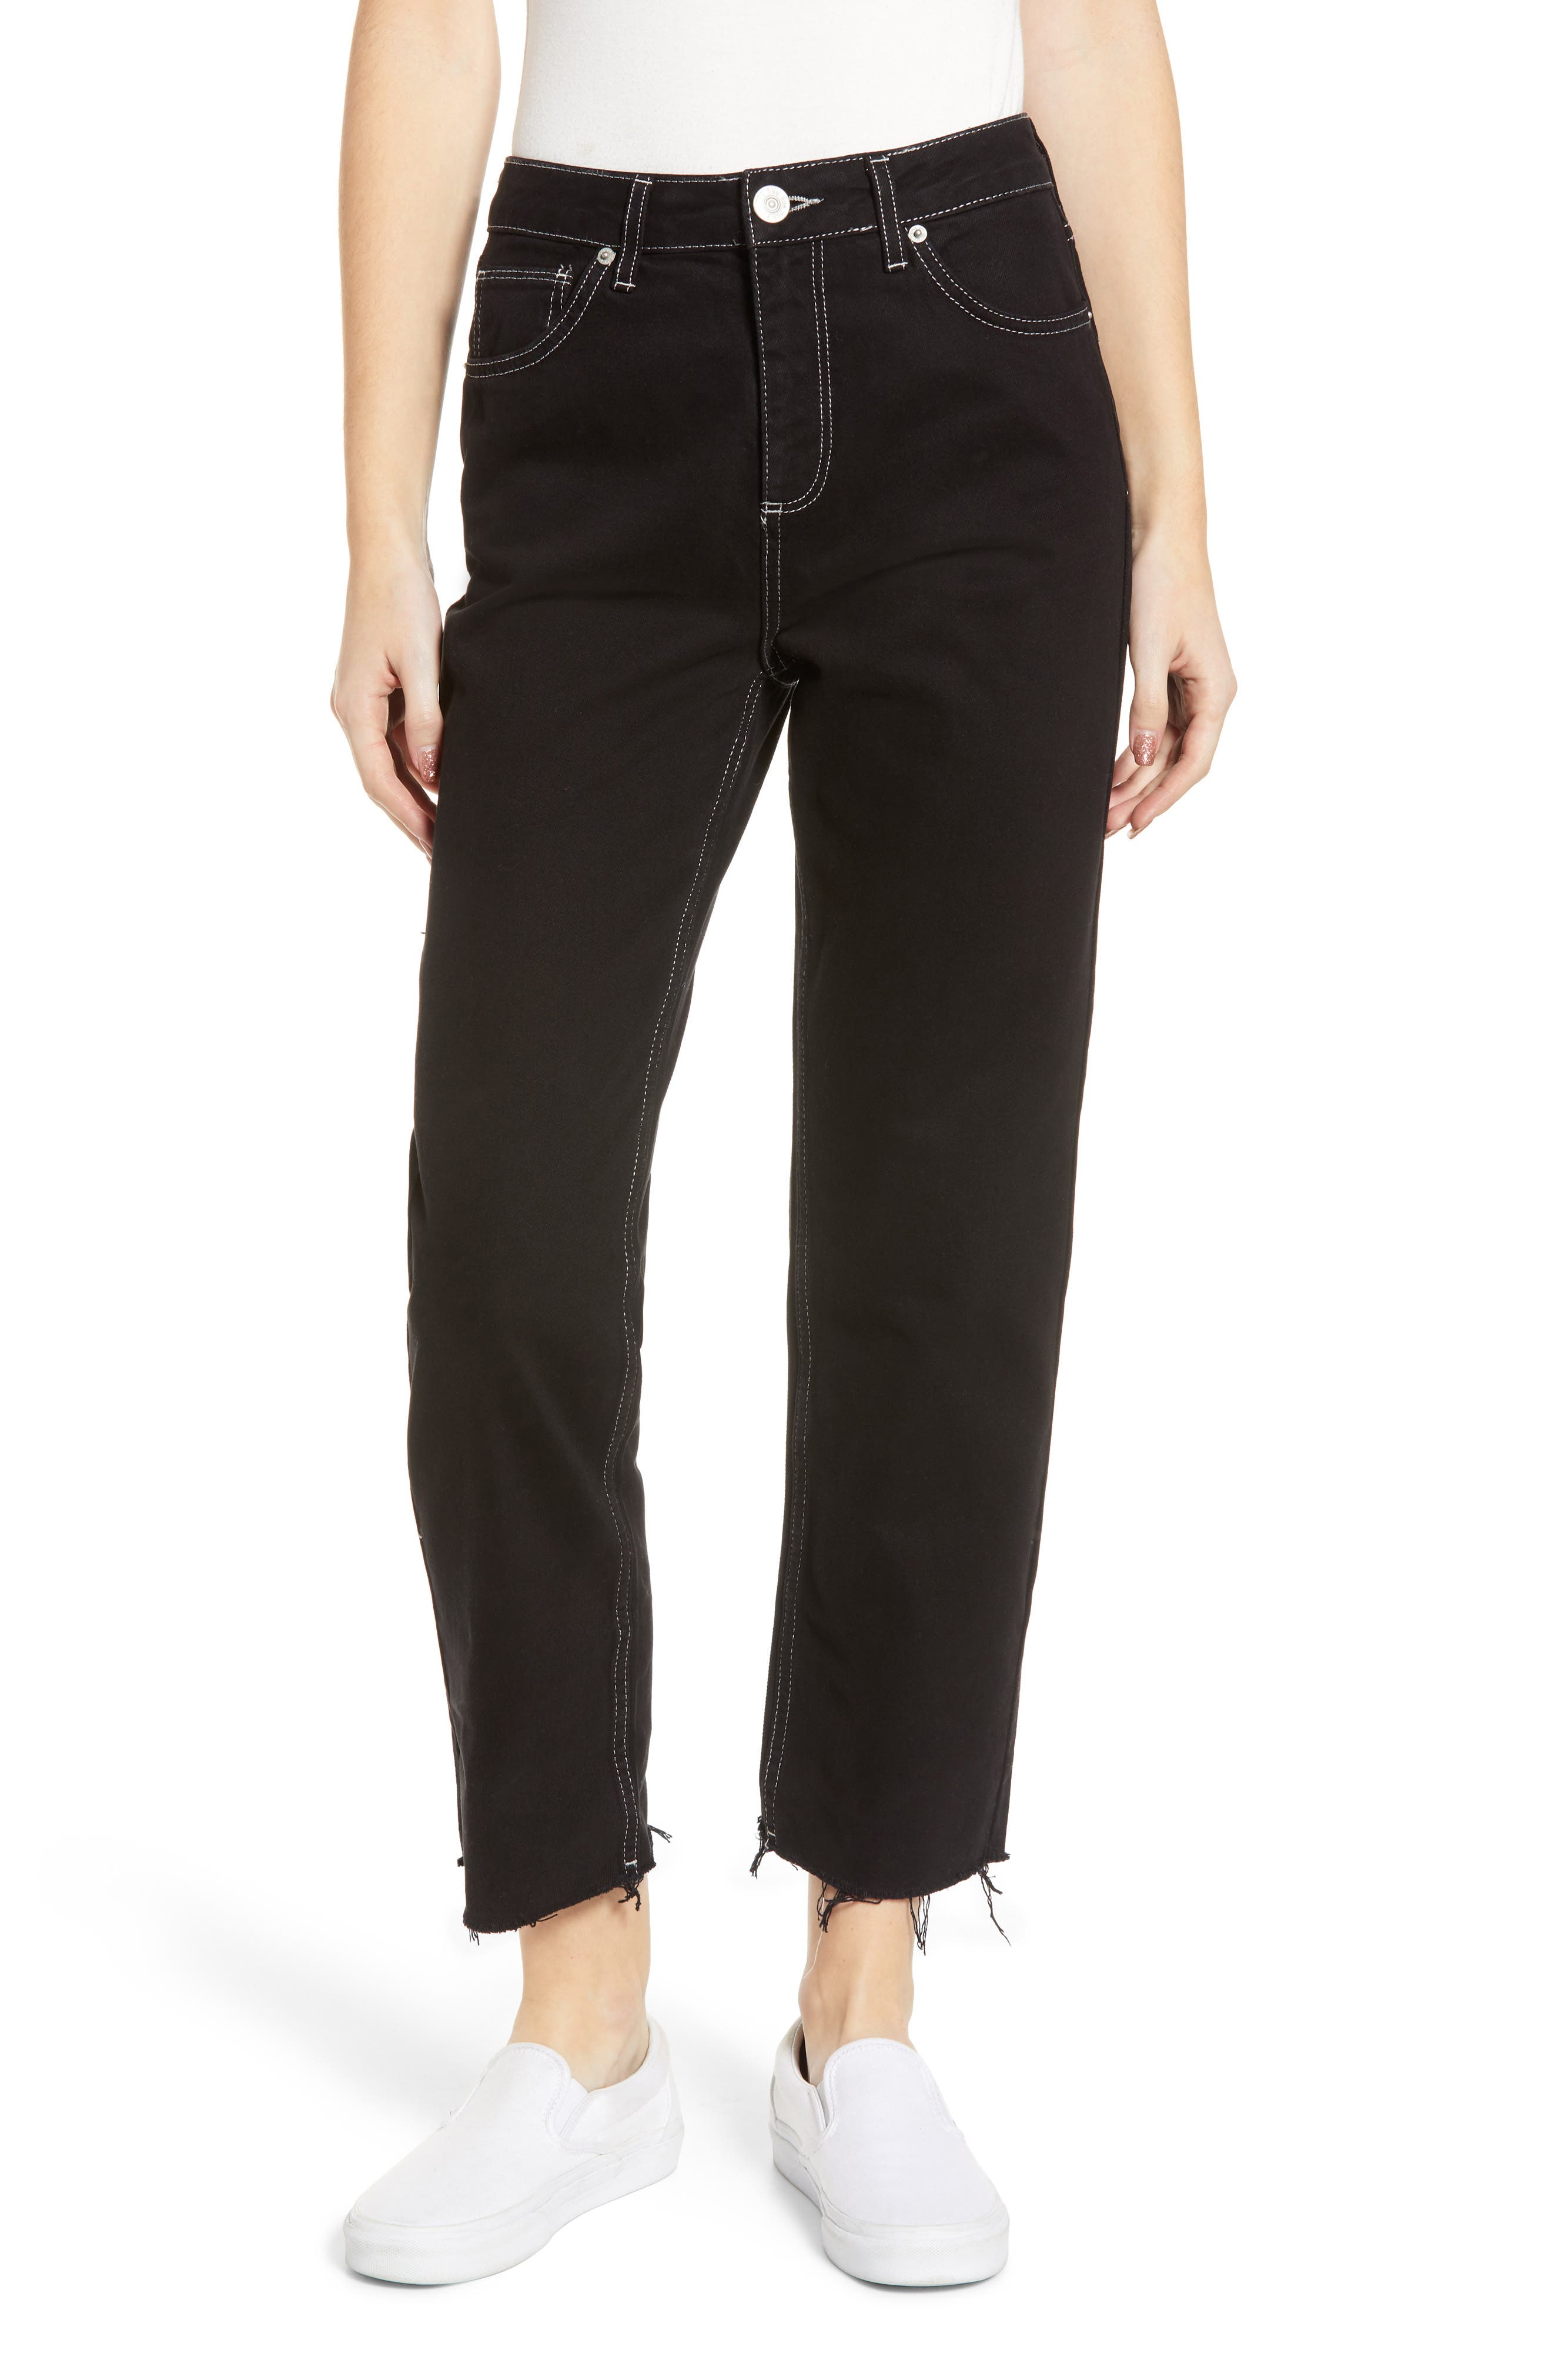 Urban Outfitters Pax High Waist Jeans,                             Main thumbnail 1, color,                             BLACK